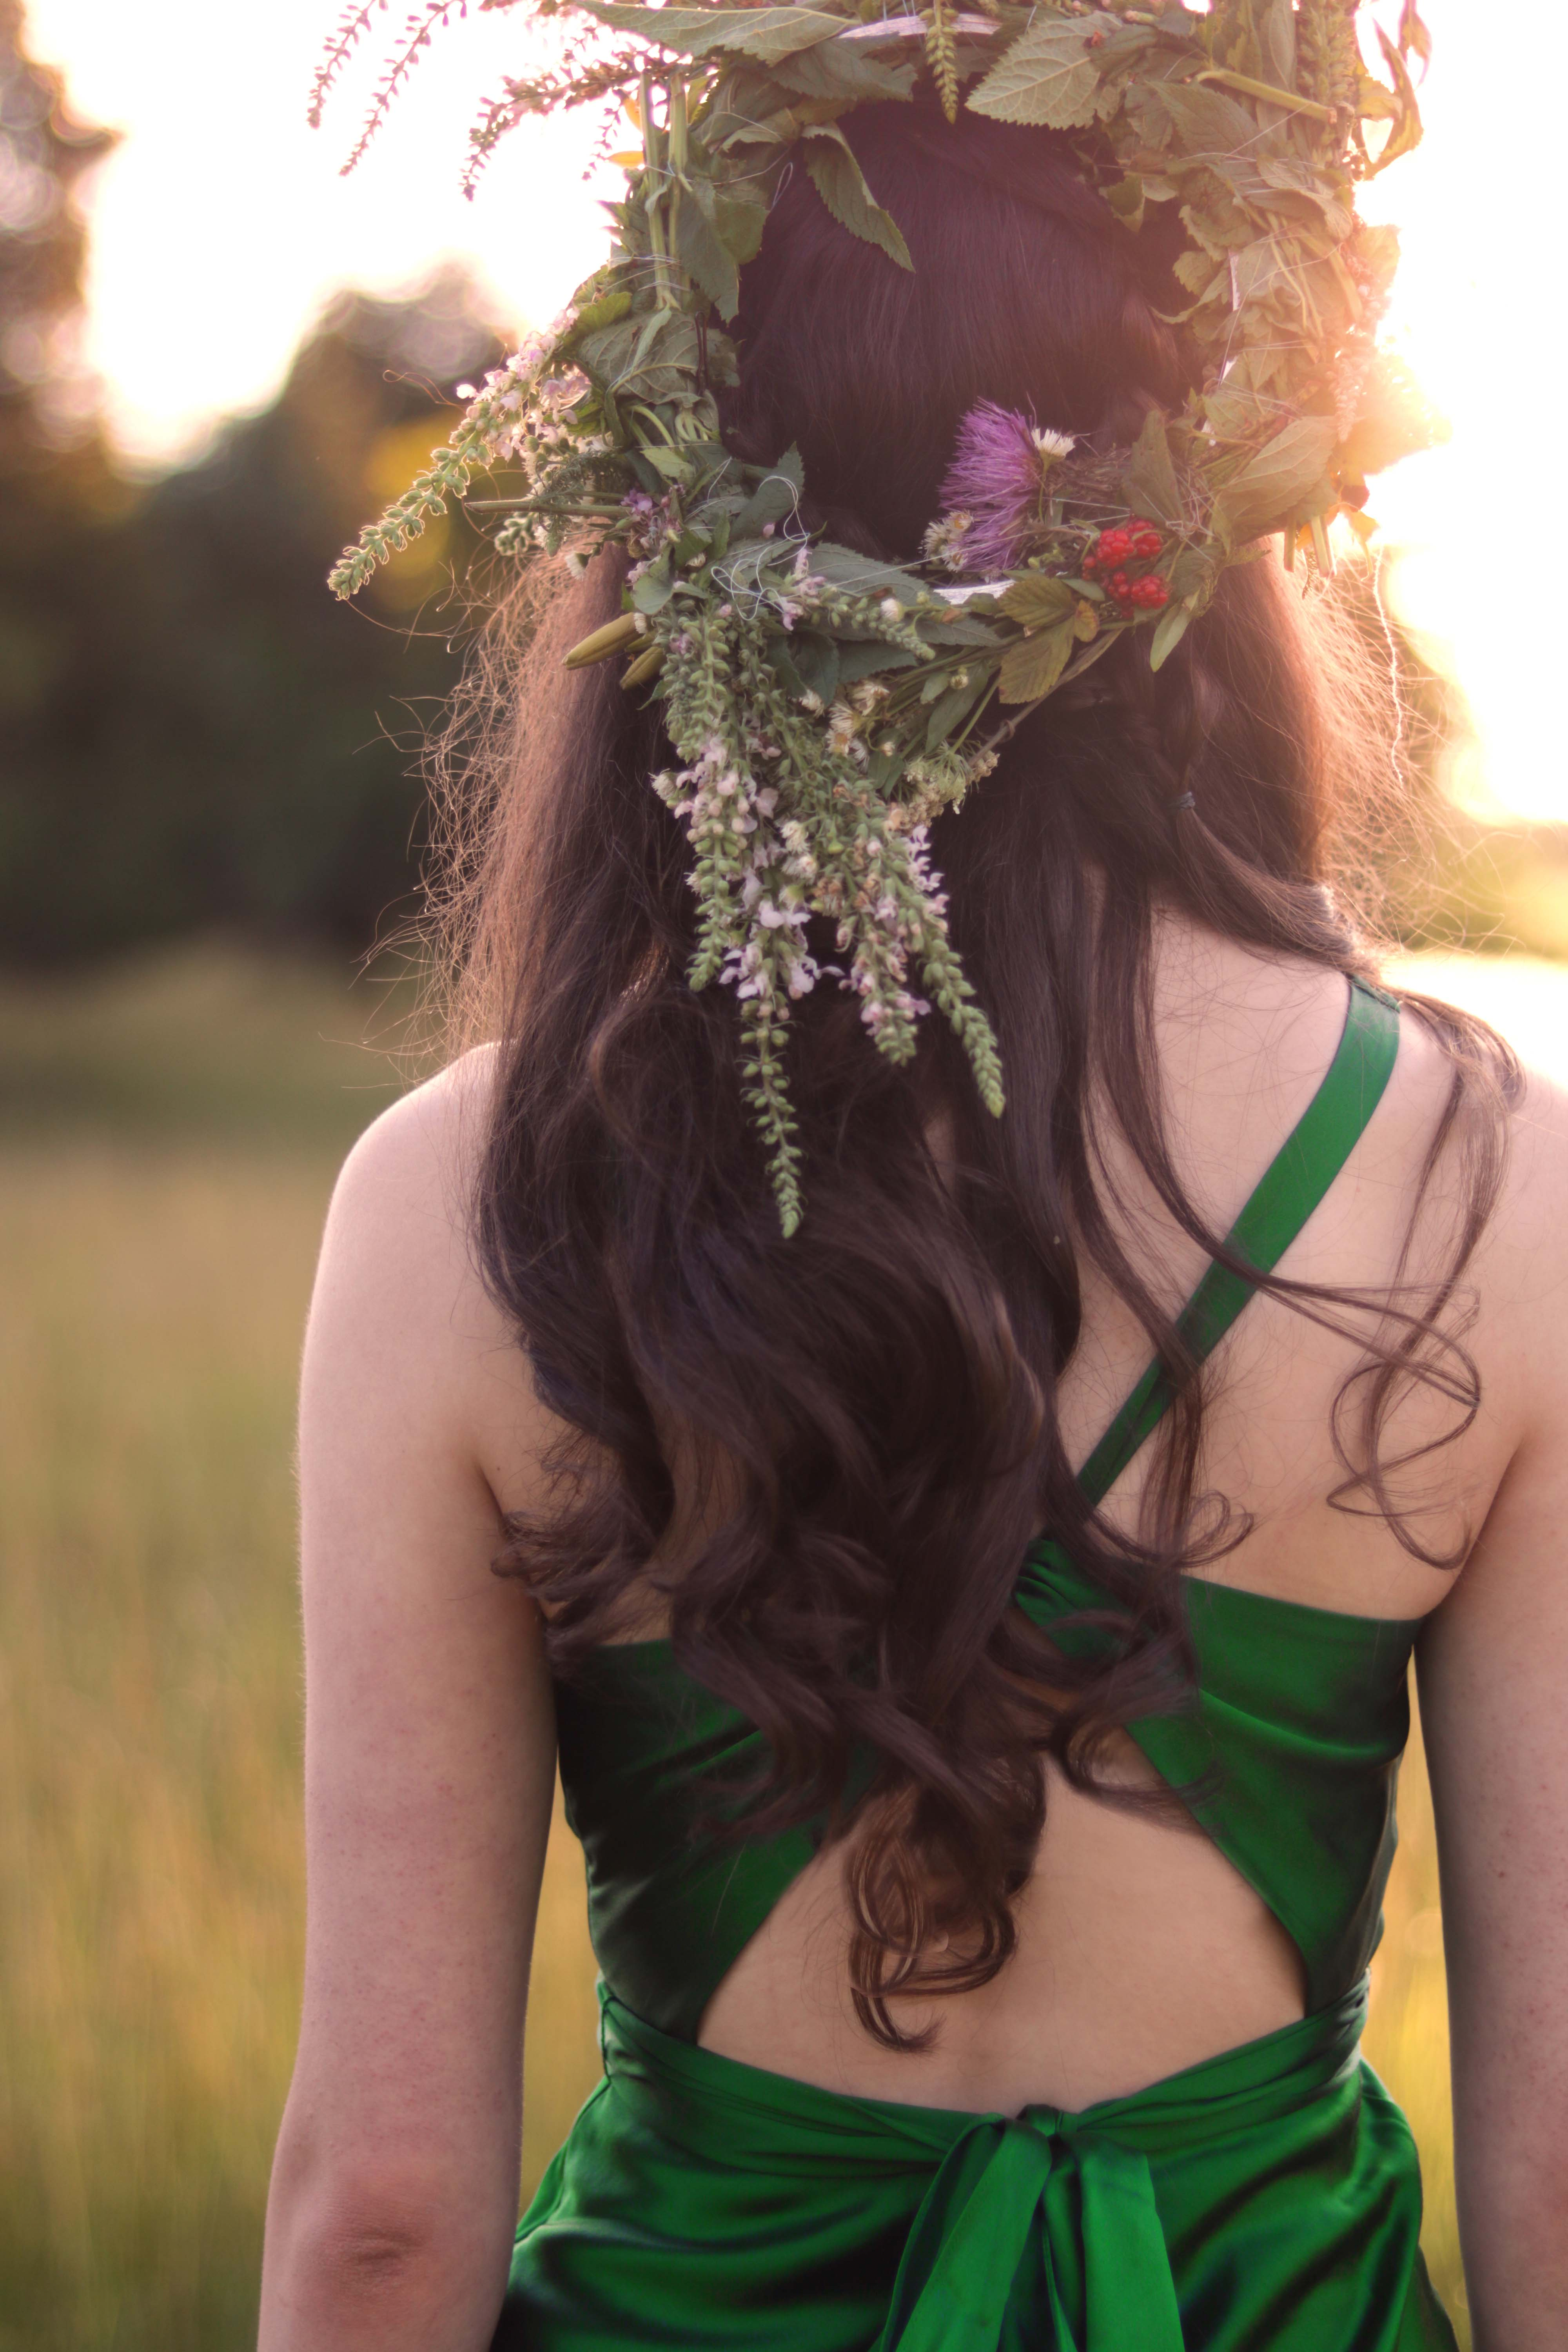 If you're planning a handfasting, but you're worried about your family's (or your SO's family's) reaction to a pagan wedding, Moody Moons has some ideas to help you get through the process drama free.